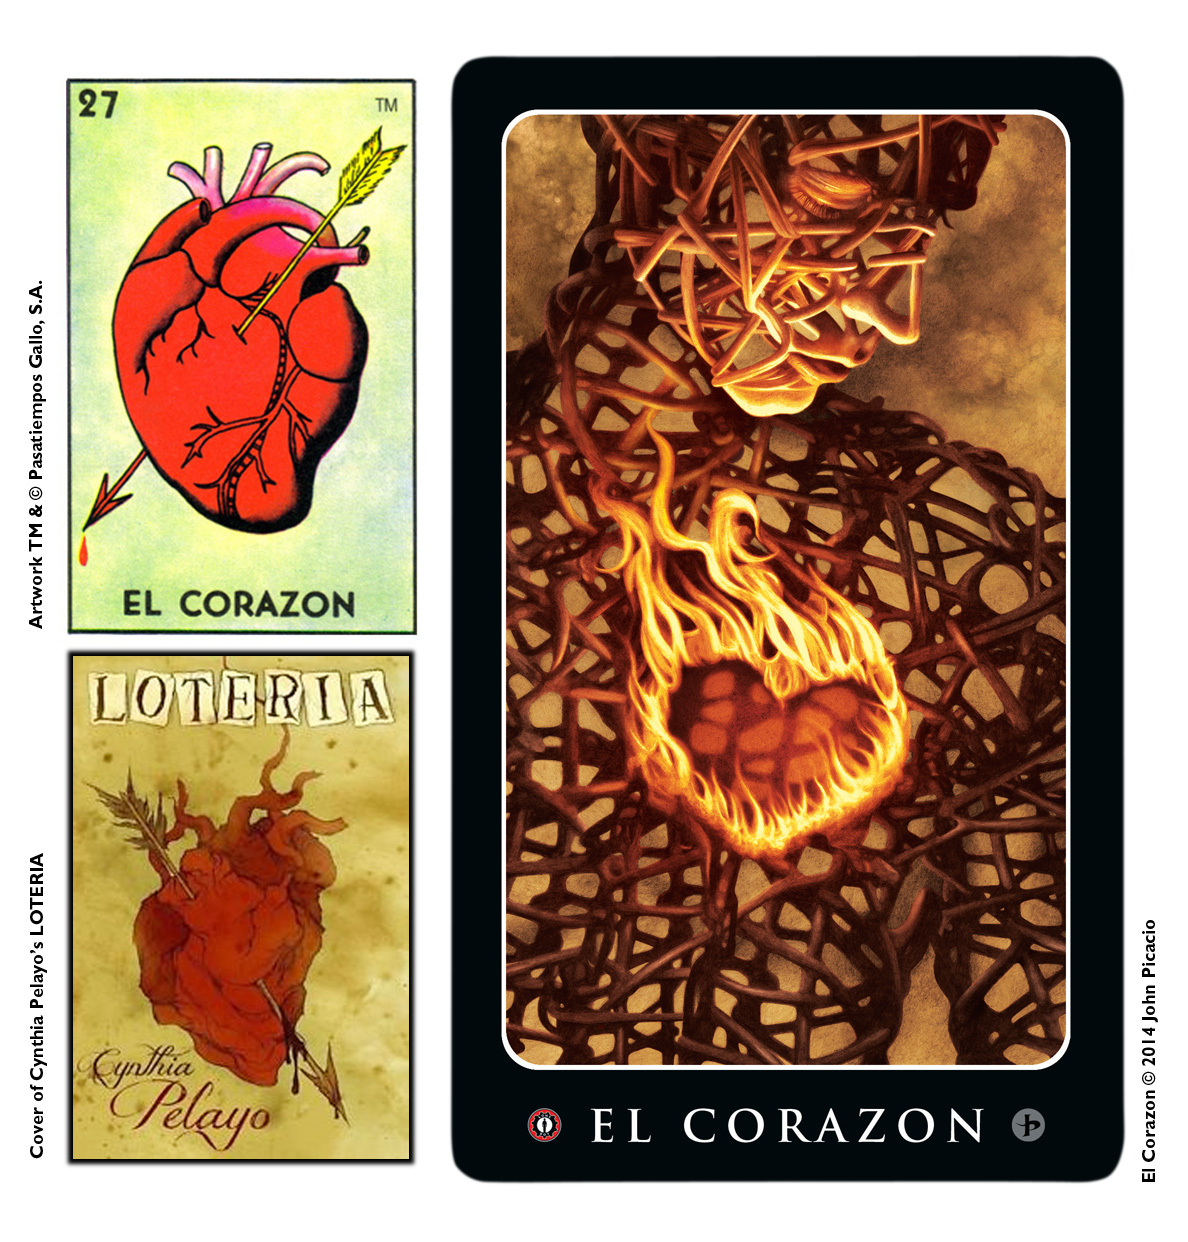 2ELCORAZON3